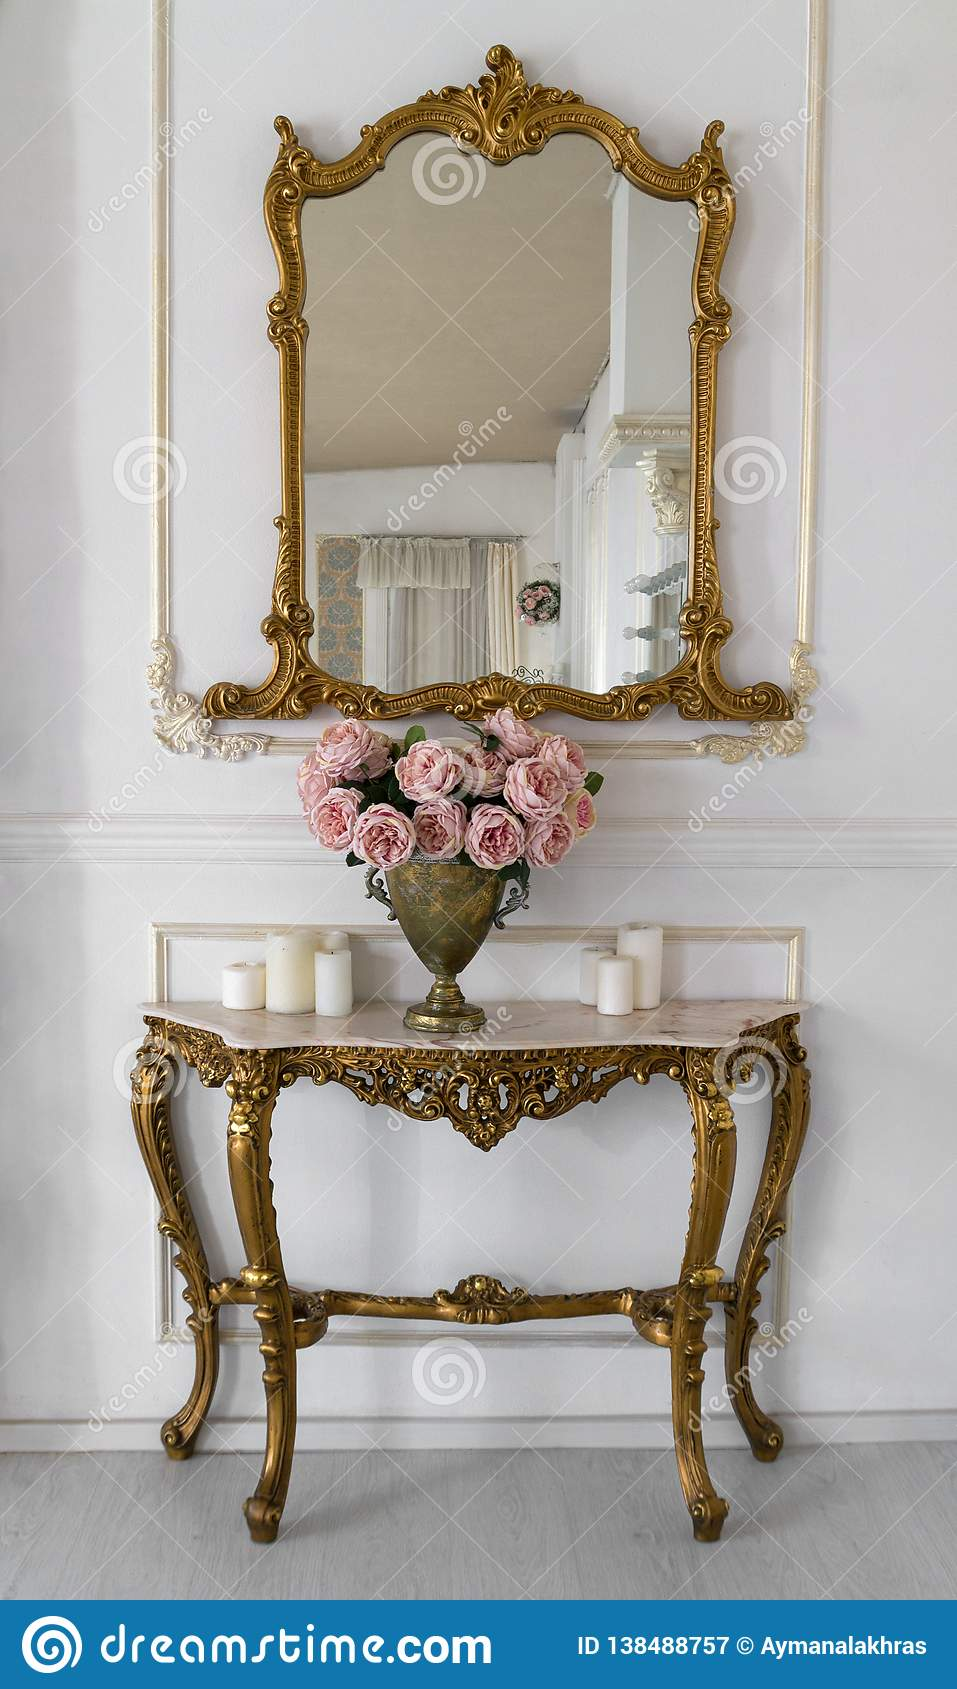 Golden Vintage Vanity Mirror And Golden Table Stock Image Image Of Home Carved 138488757